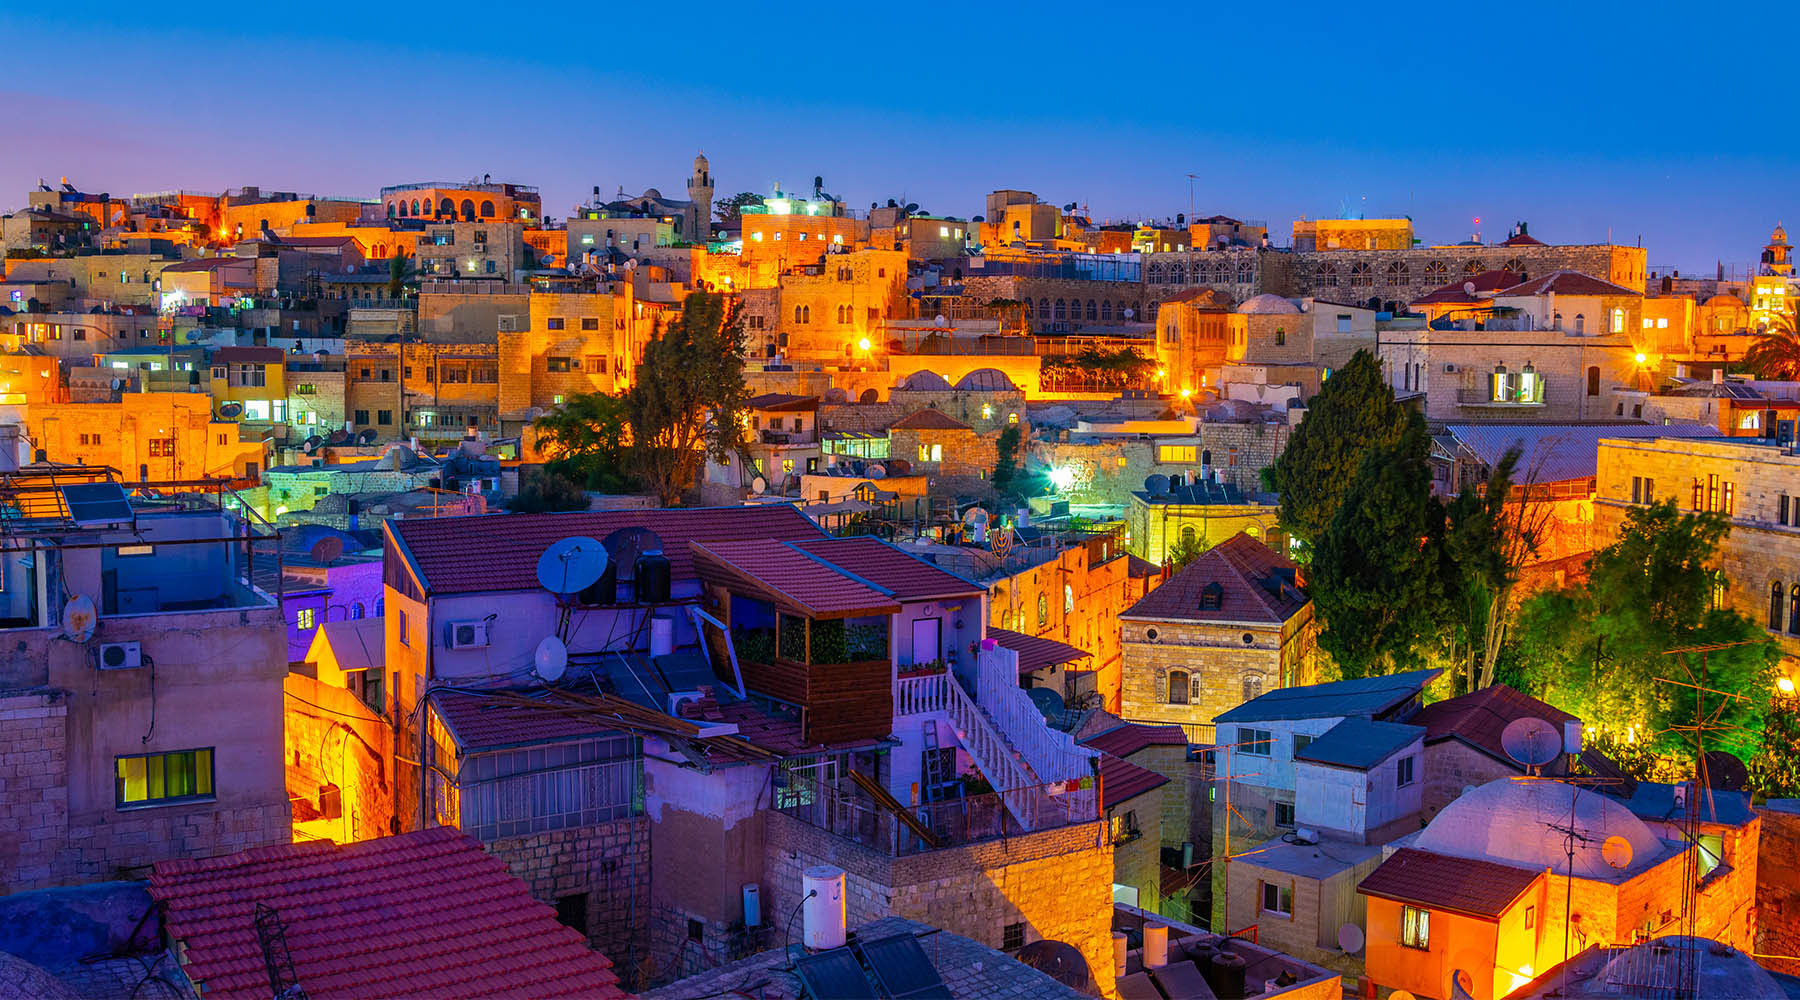 Israeli city at night